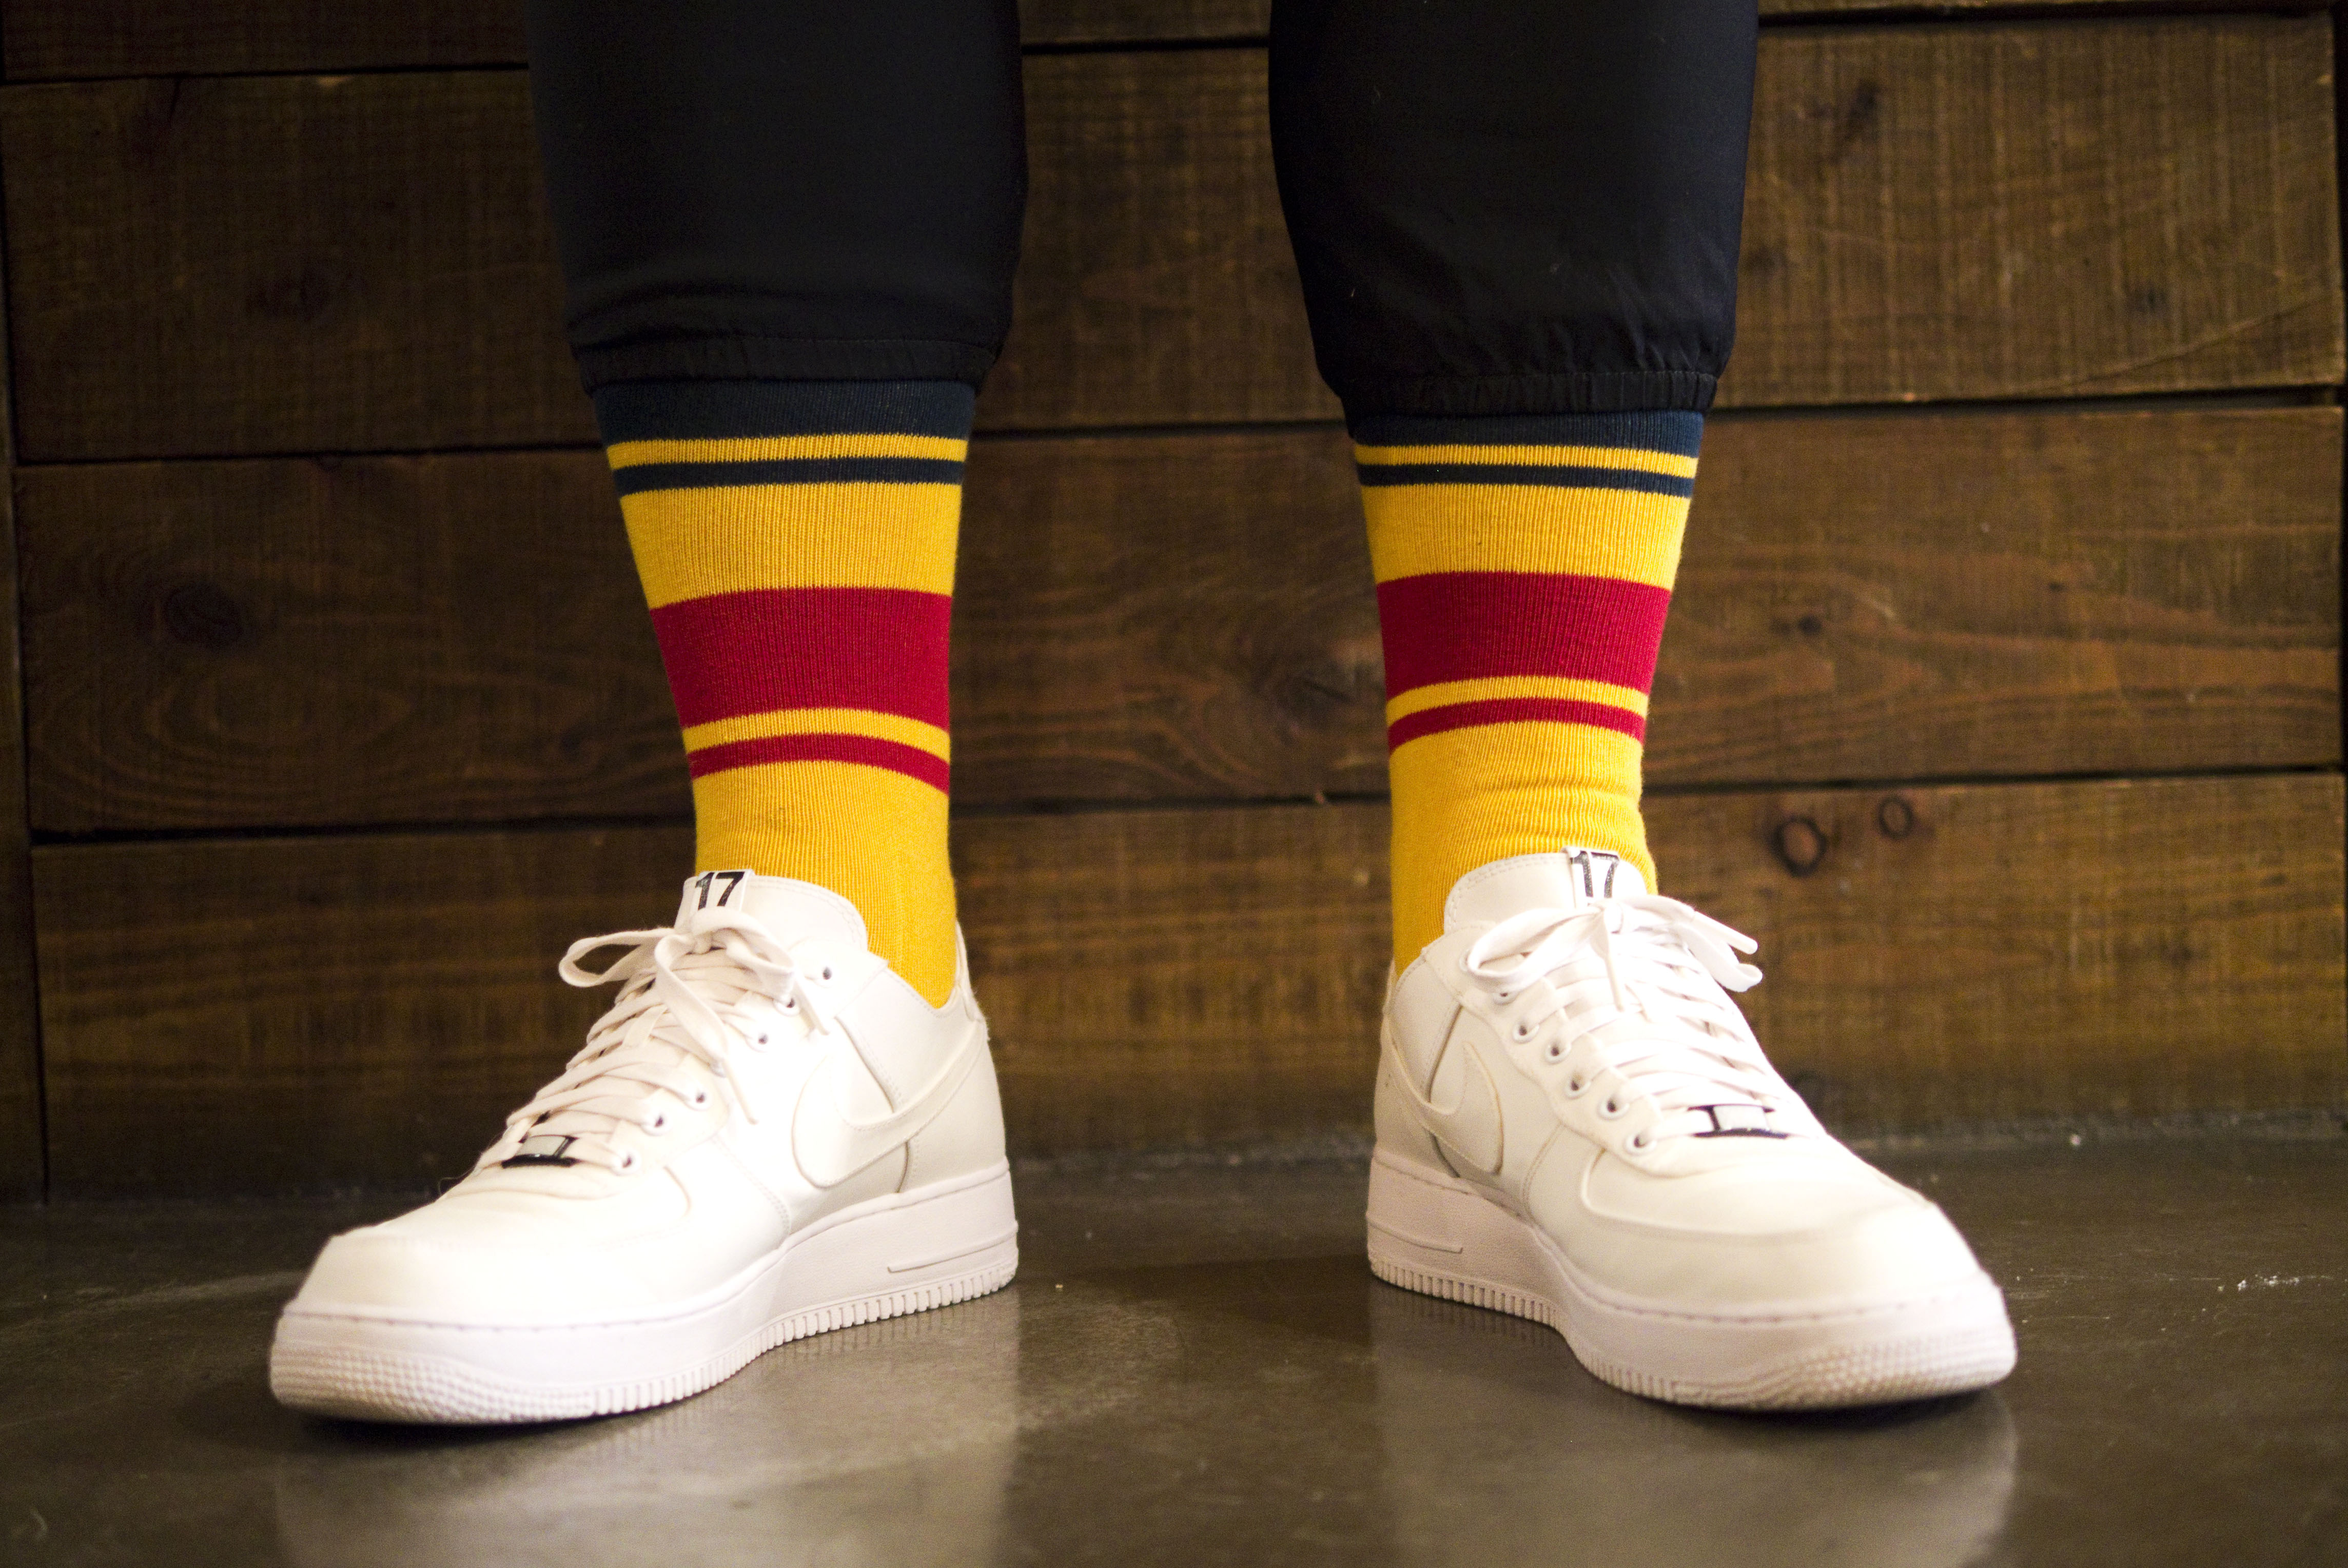 This is how to buy socks as a present this Christmas